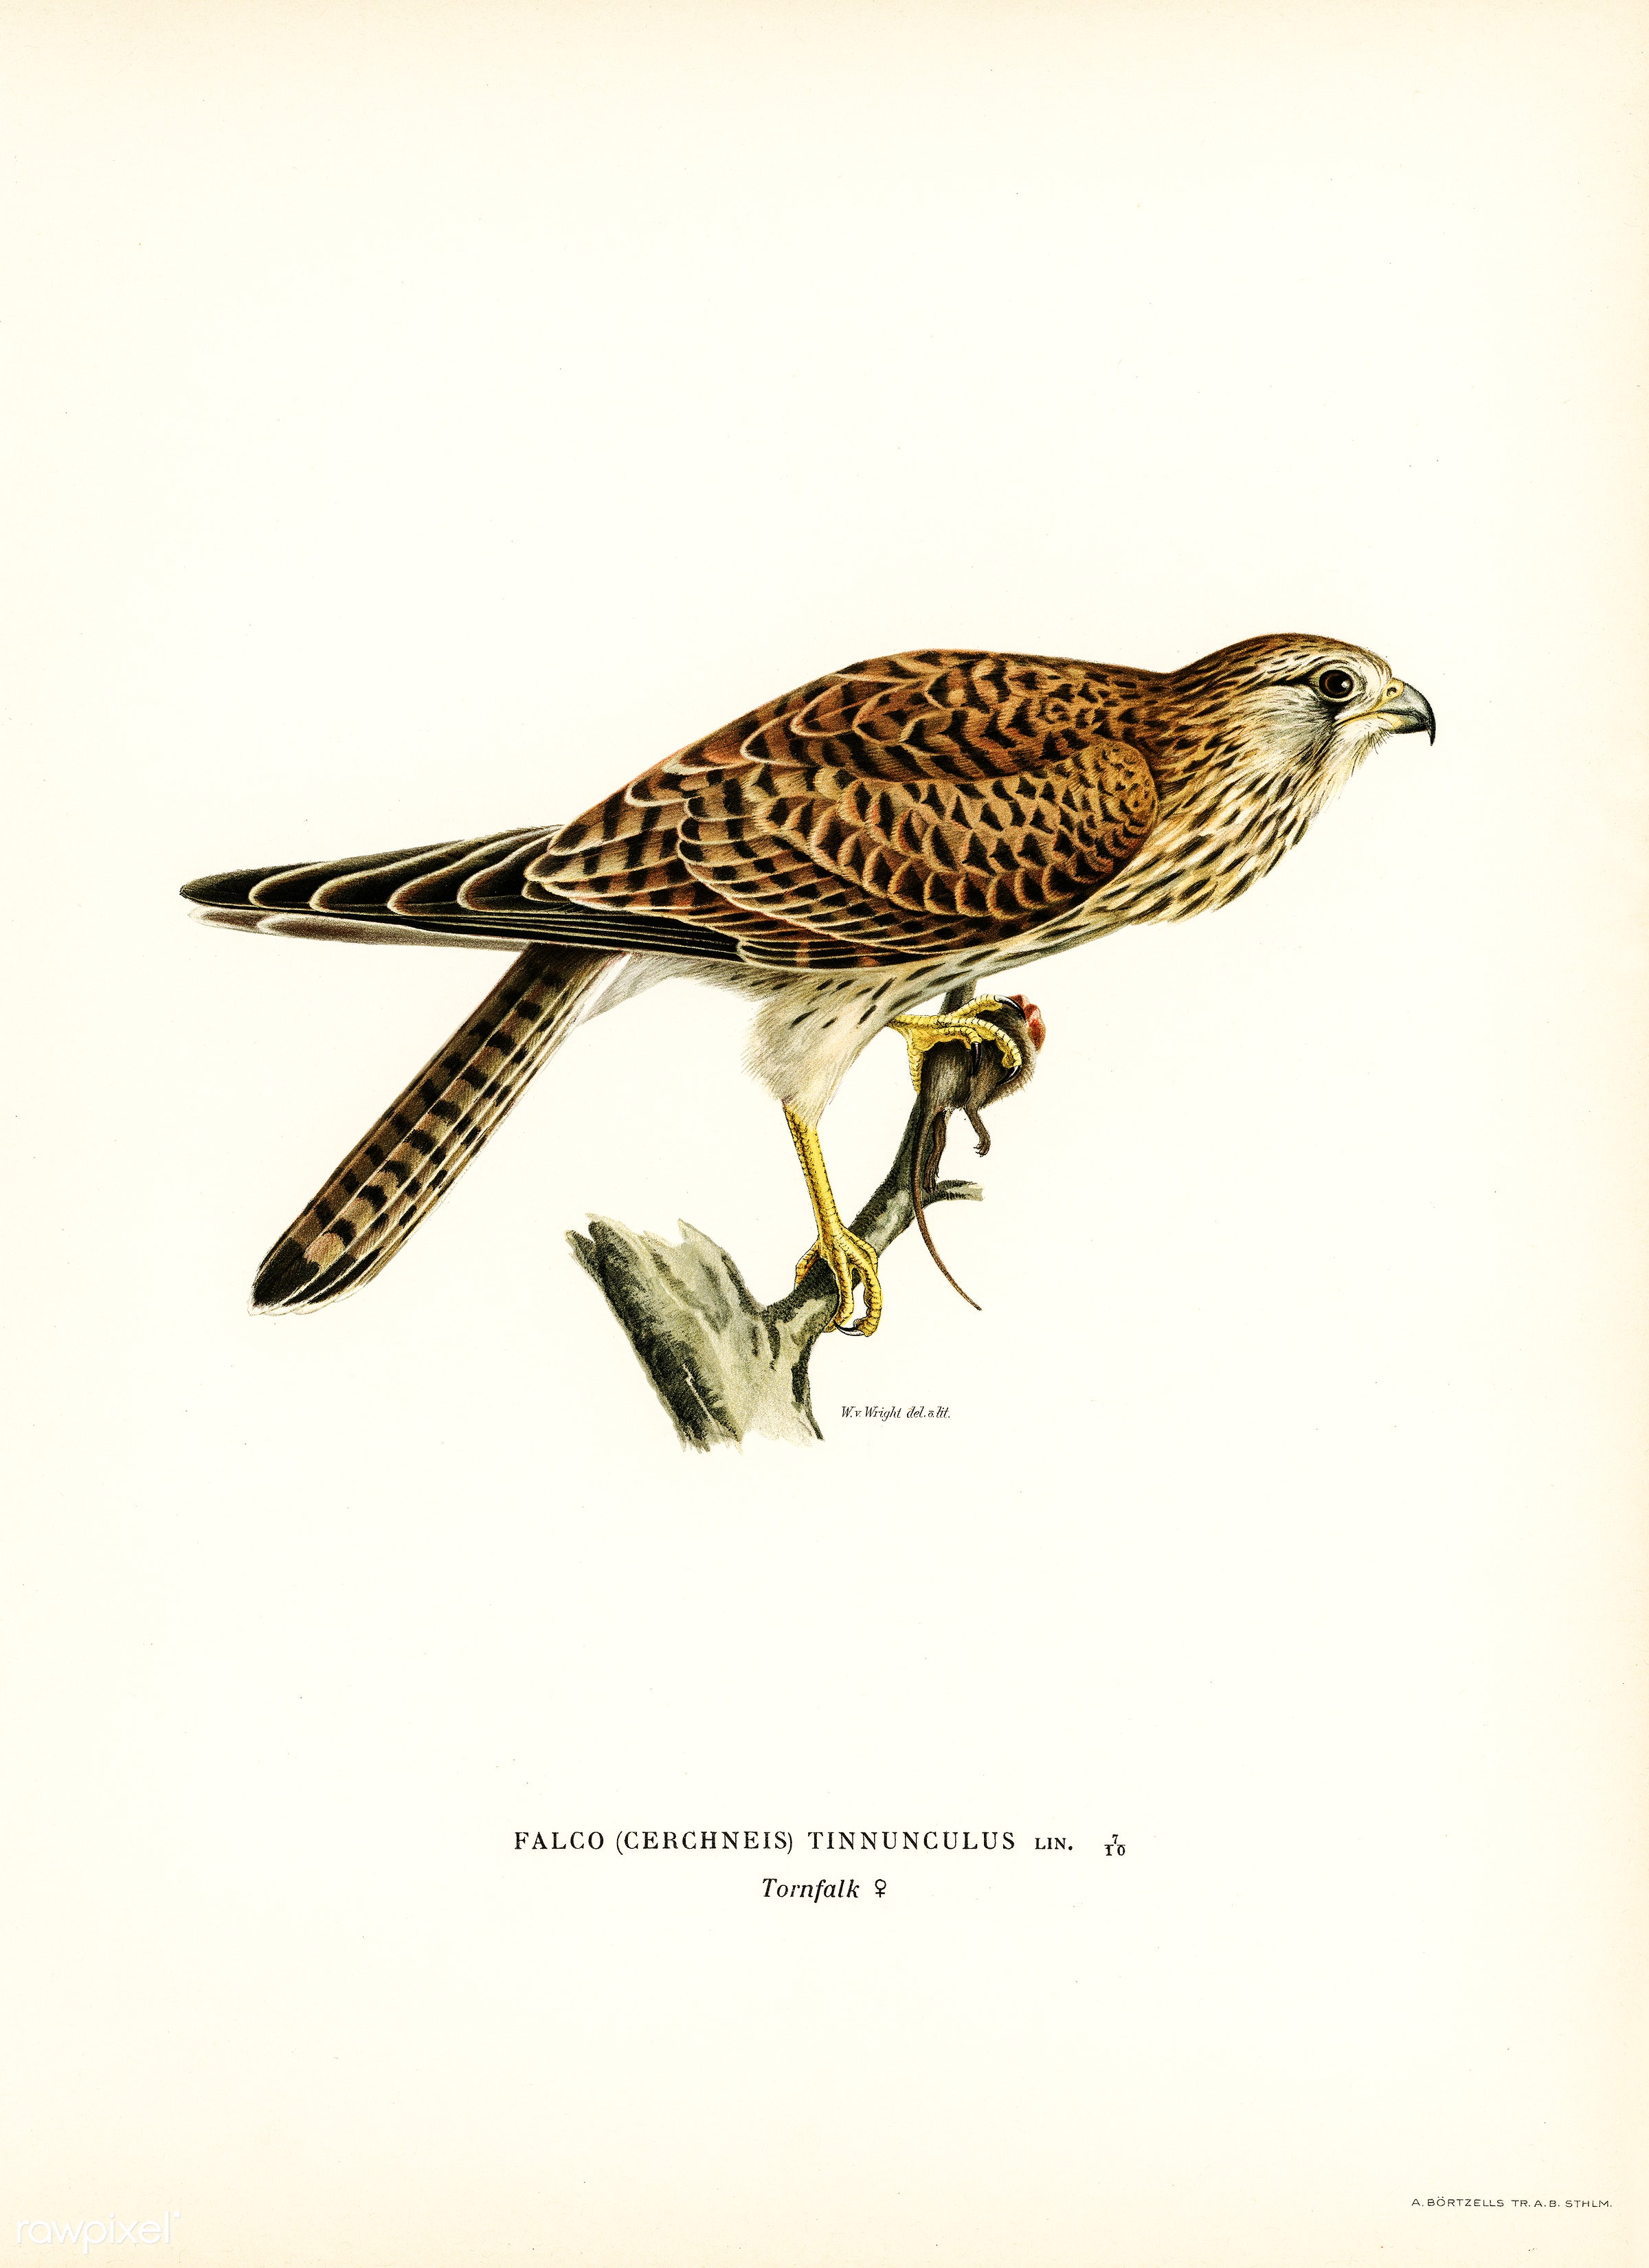 Common Kestrel female (Falco tinnunculus) illustrated by the von Wright brothers. Digitally enhanced from our own 1929 folio...